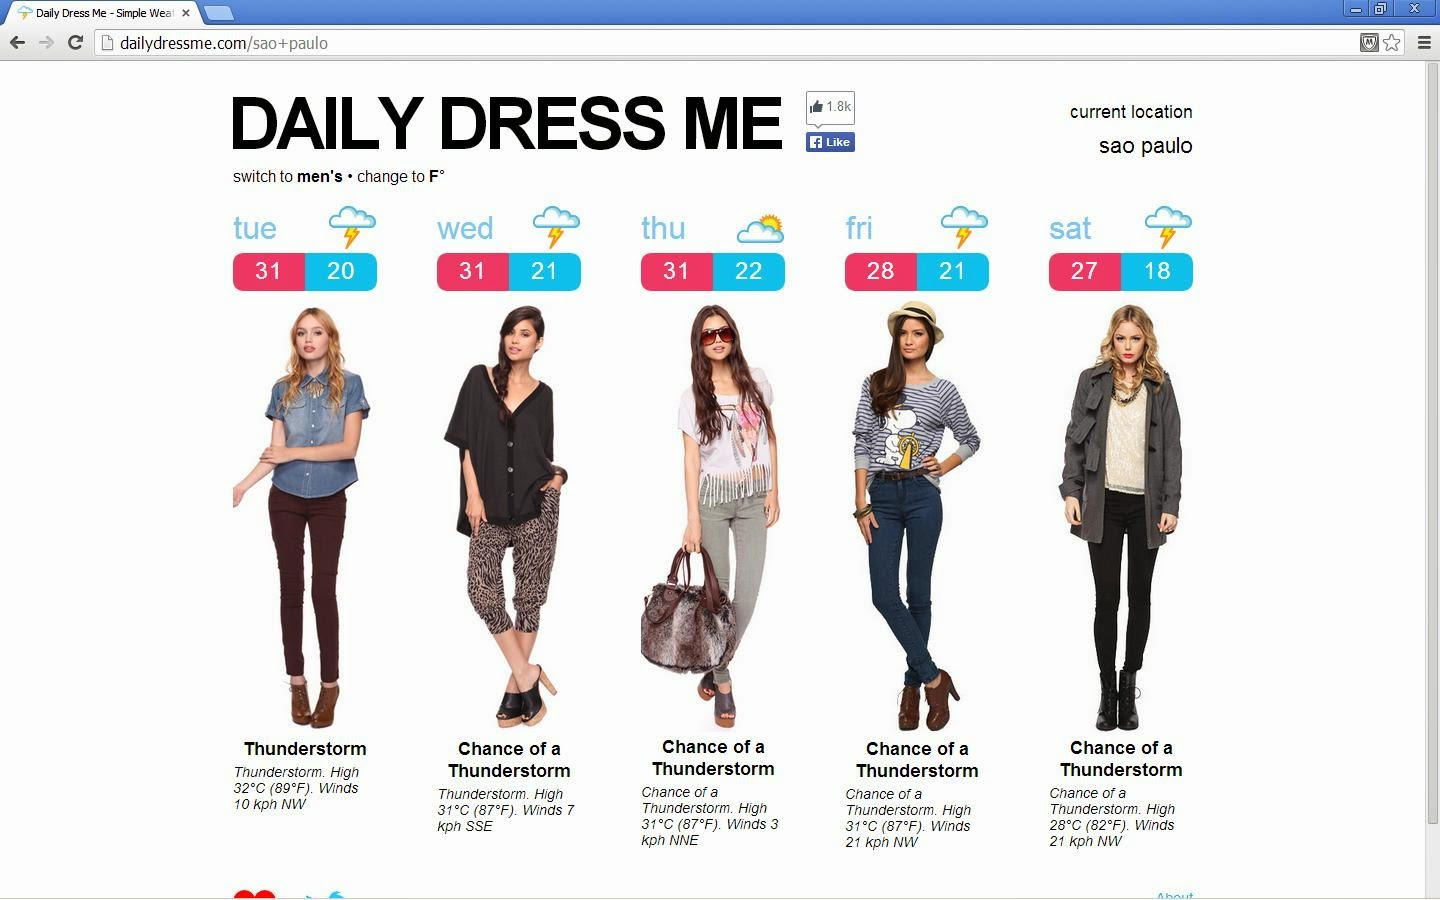 Daily Dress Me